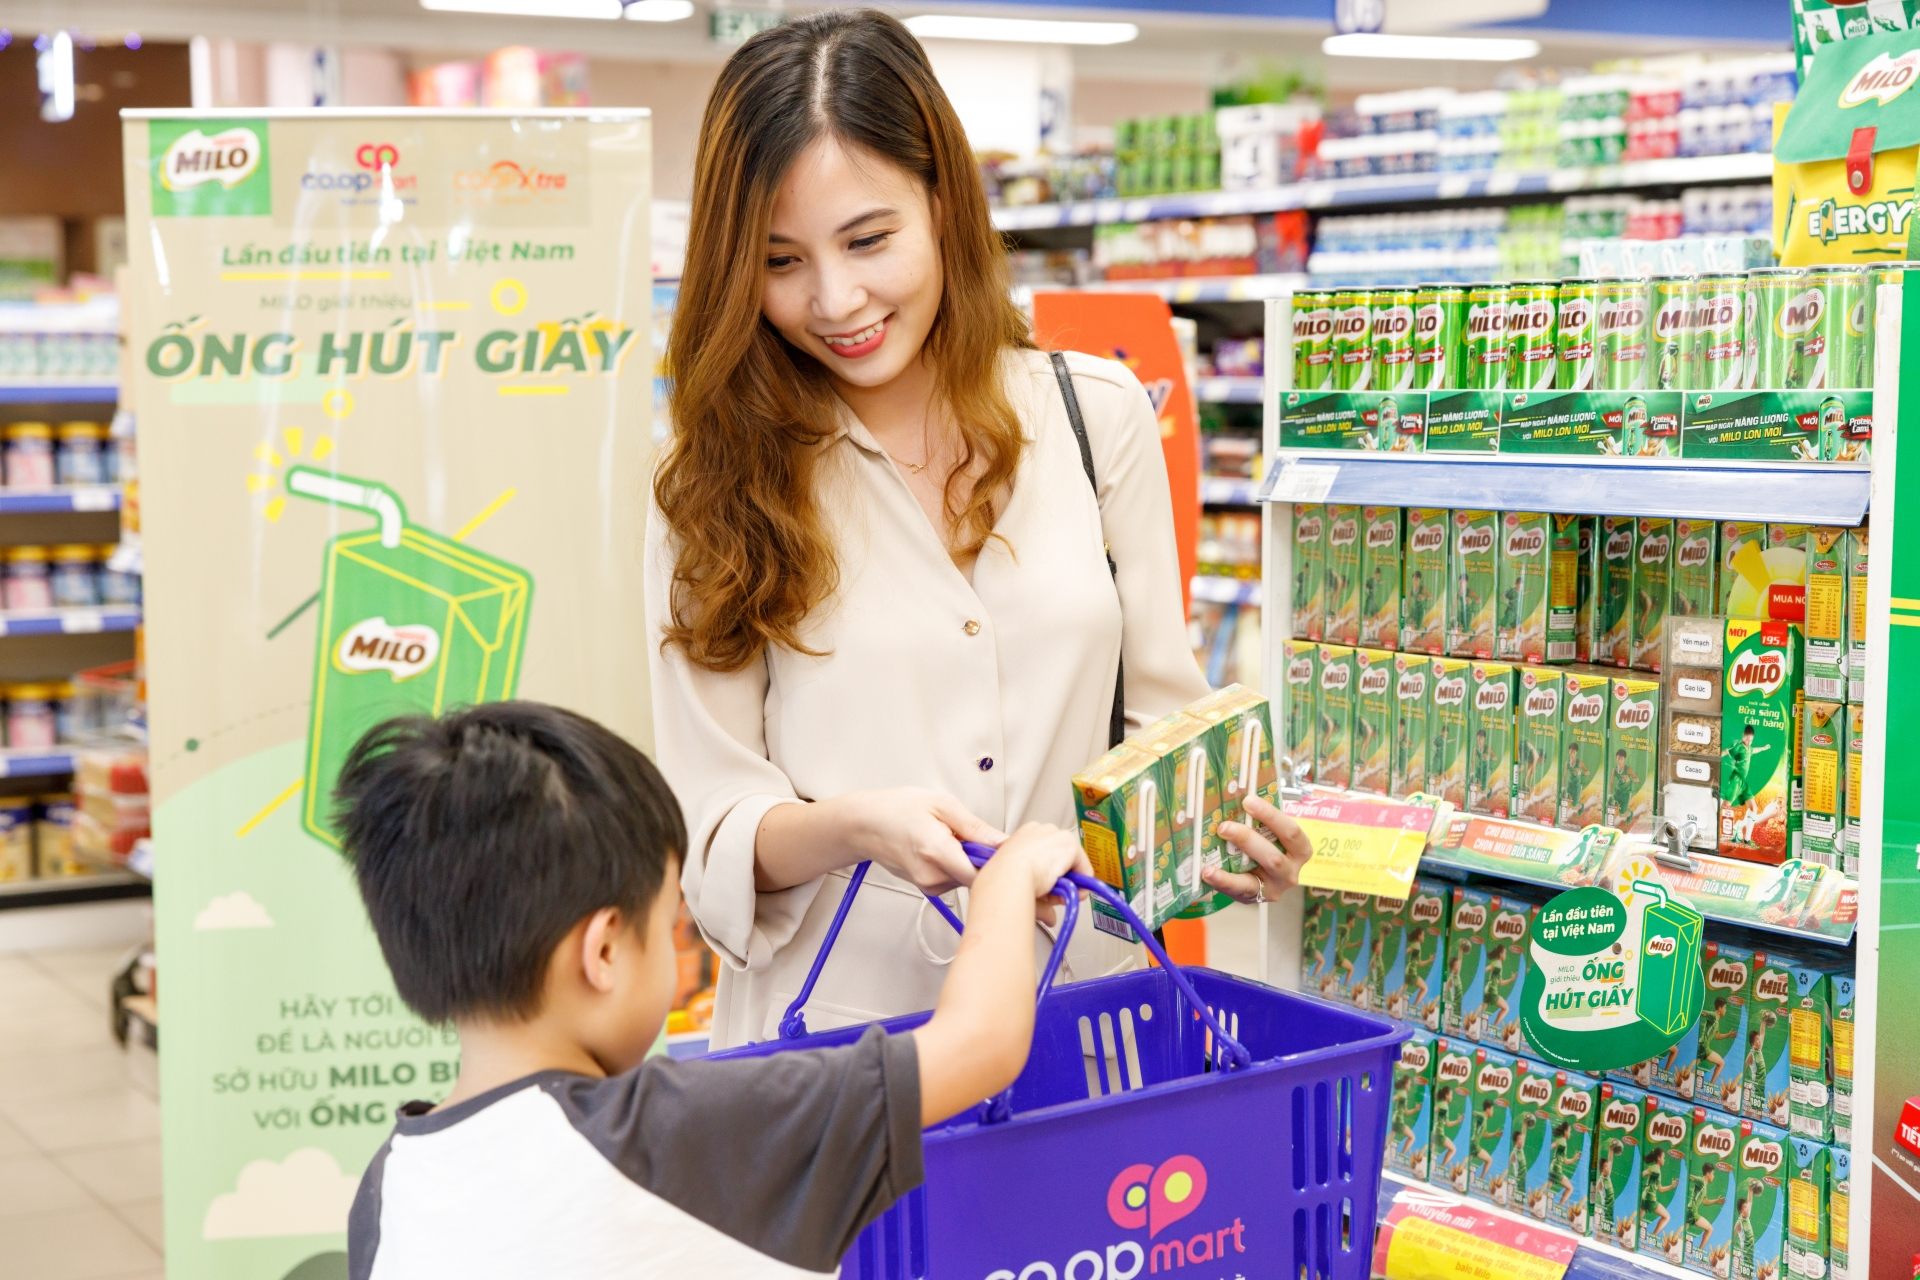 Nestlé MILOlaunches paper straws for MILO Breakfast Drink to promote green consumption trends